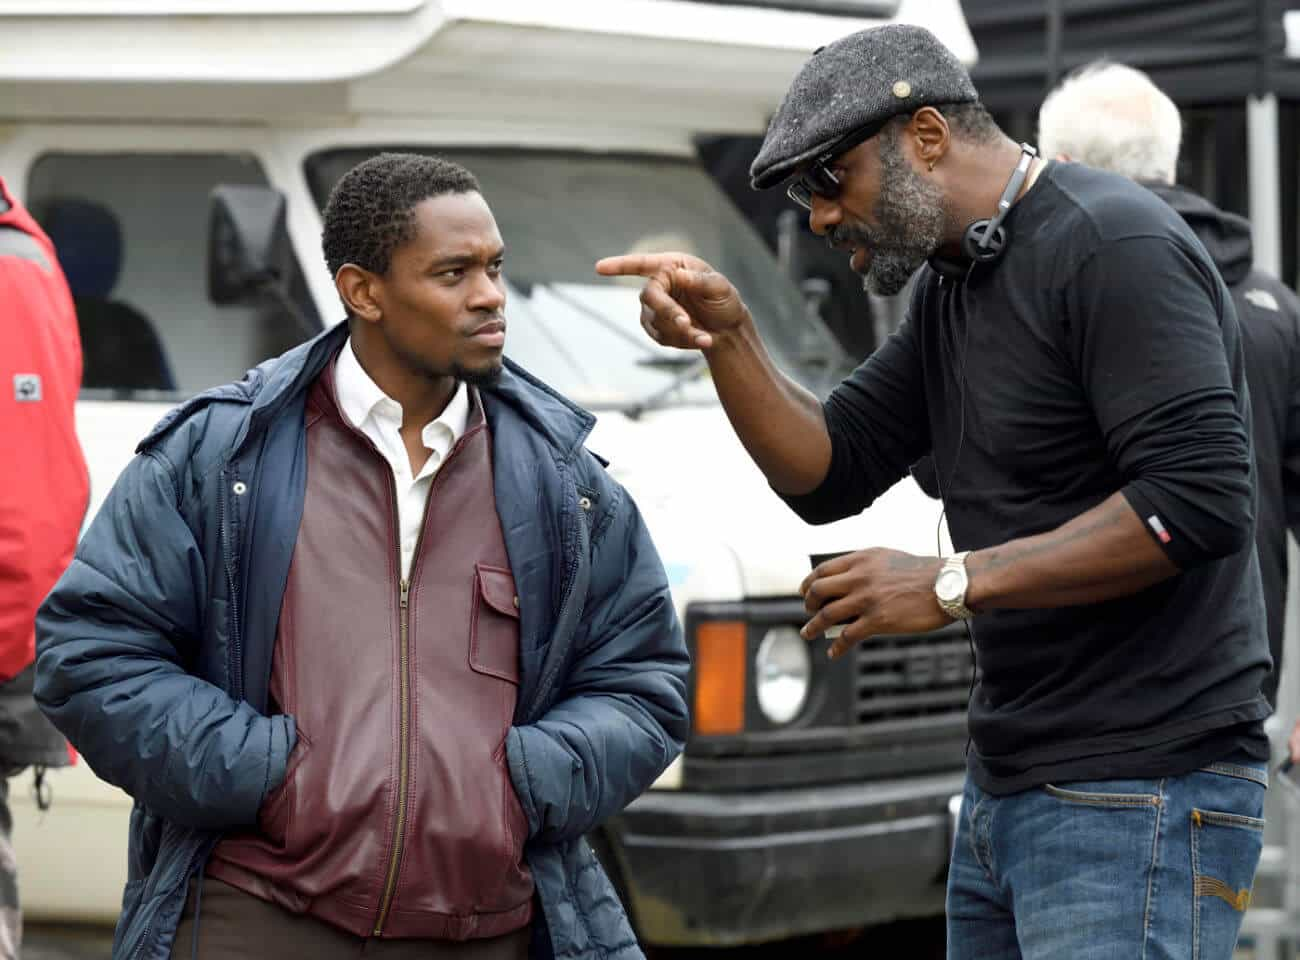 film reviews | movies | features | BRWC Work Begins On Idris Elba's Yardie